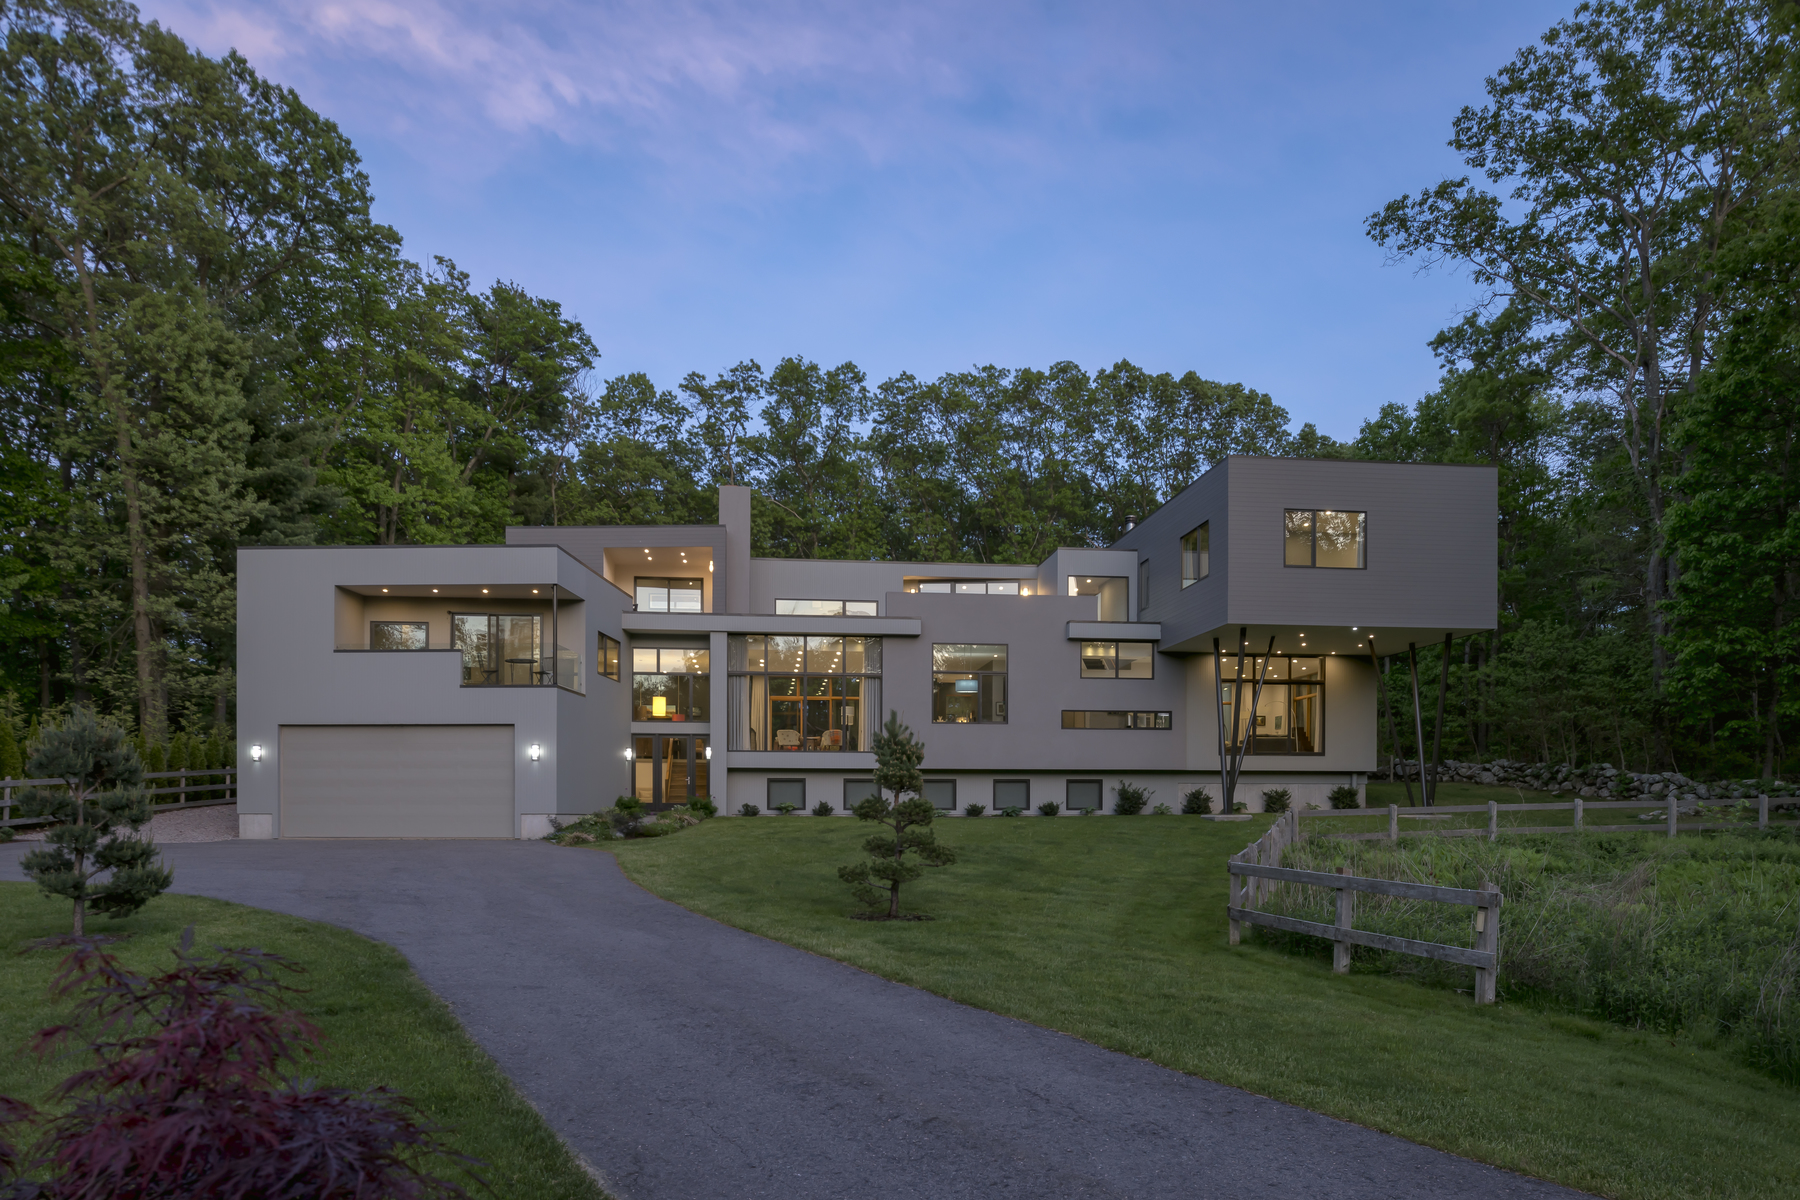 Casa Unifamiliar por un Venta en Contemporary Masterpiece Situated On 2.15 Private And Pristine Acres 120 Governor Stoughton Lane Milton, Massachusetts 02186 Estados Unidos